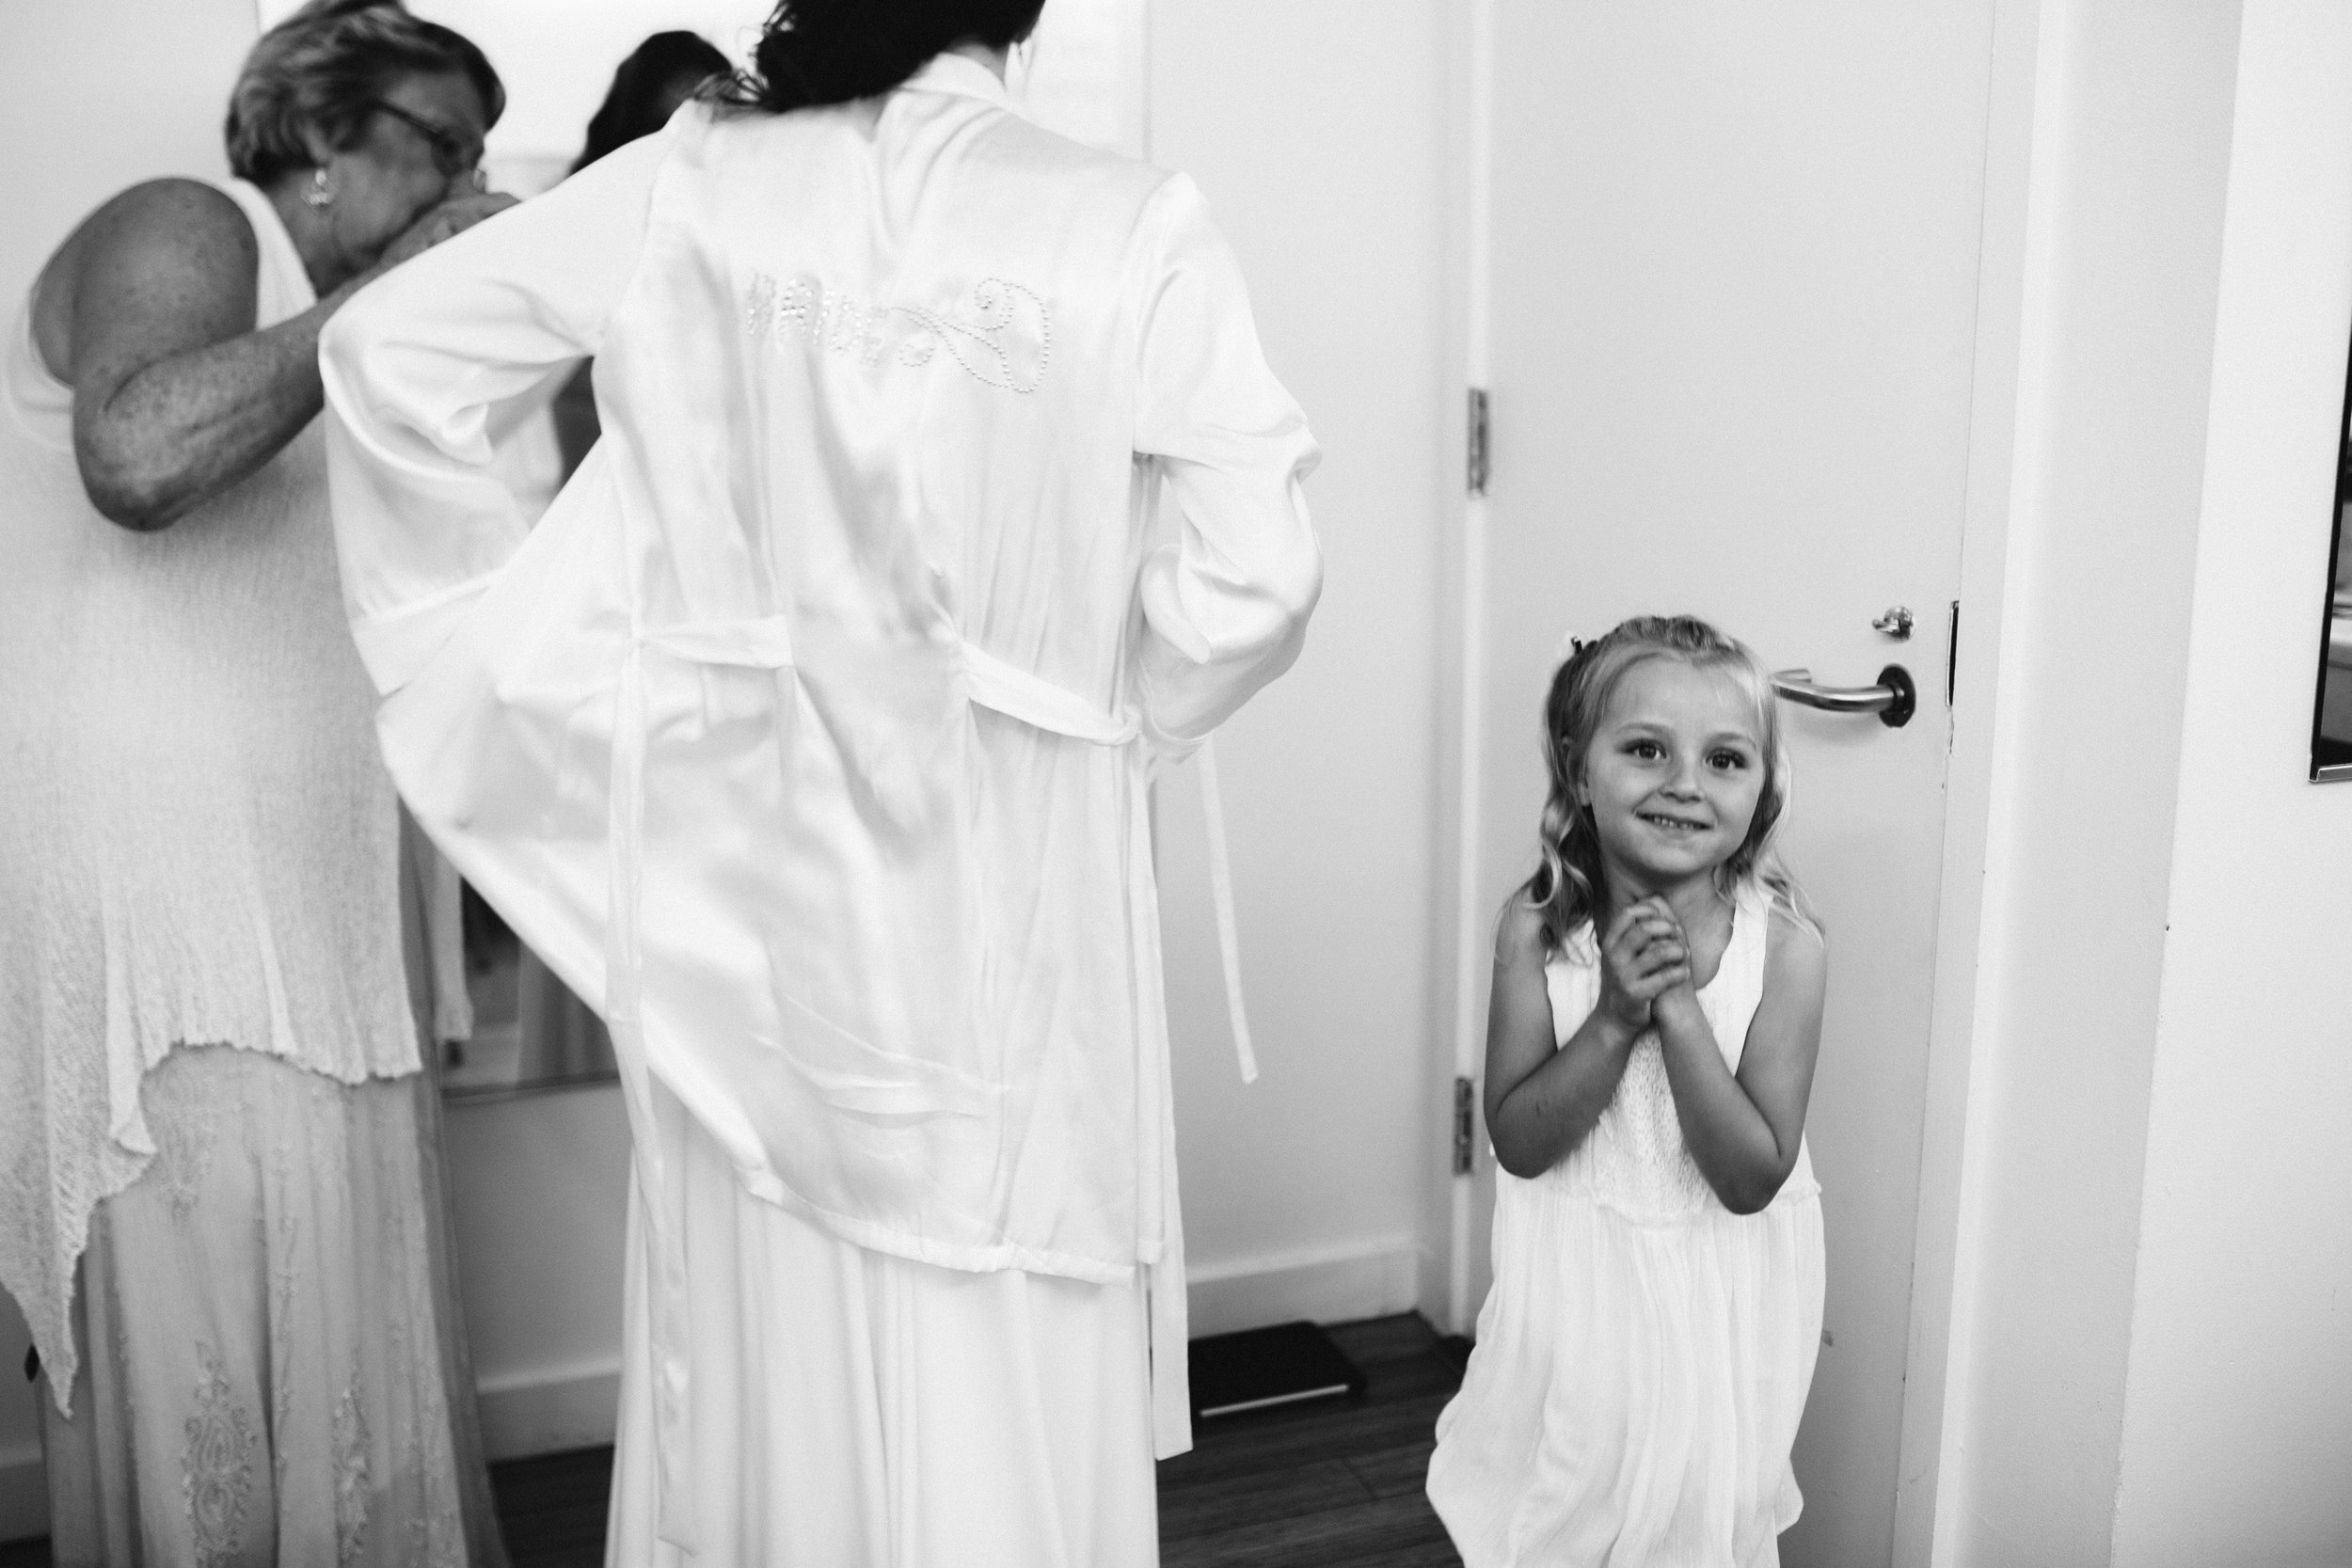 susanandkennethdorswitt.virginiaMOCA.virginiabeach.virginia.rebeccaburtphotography.art.wedding-29.jpg